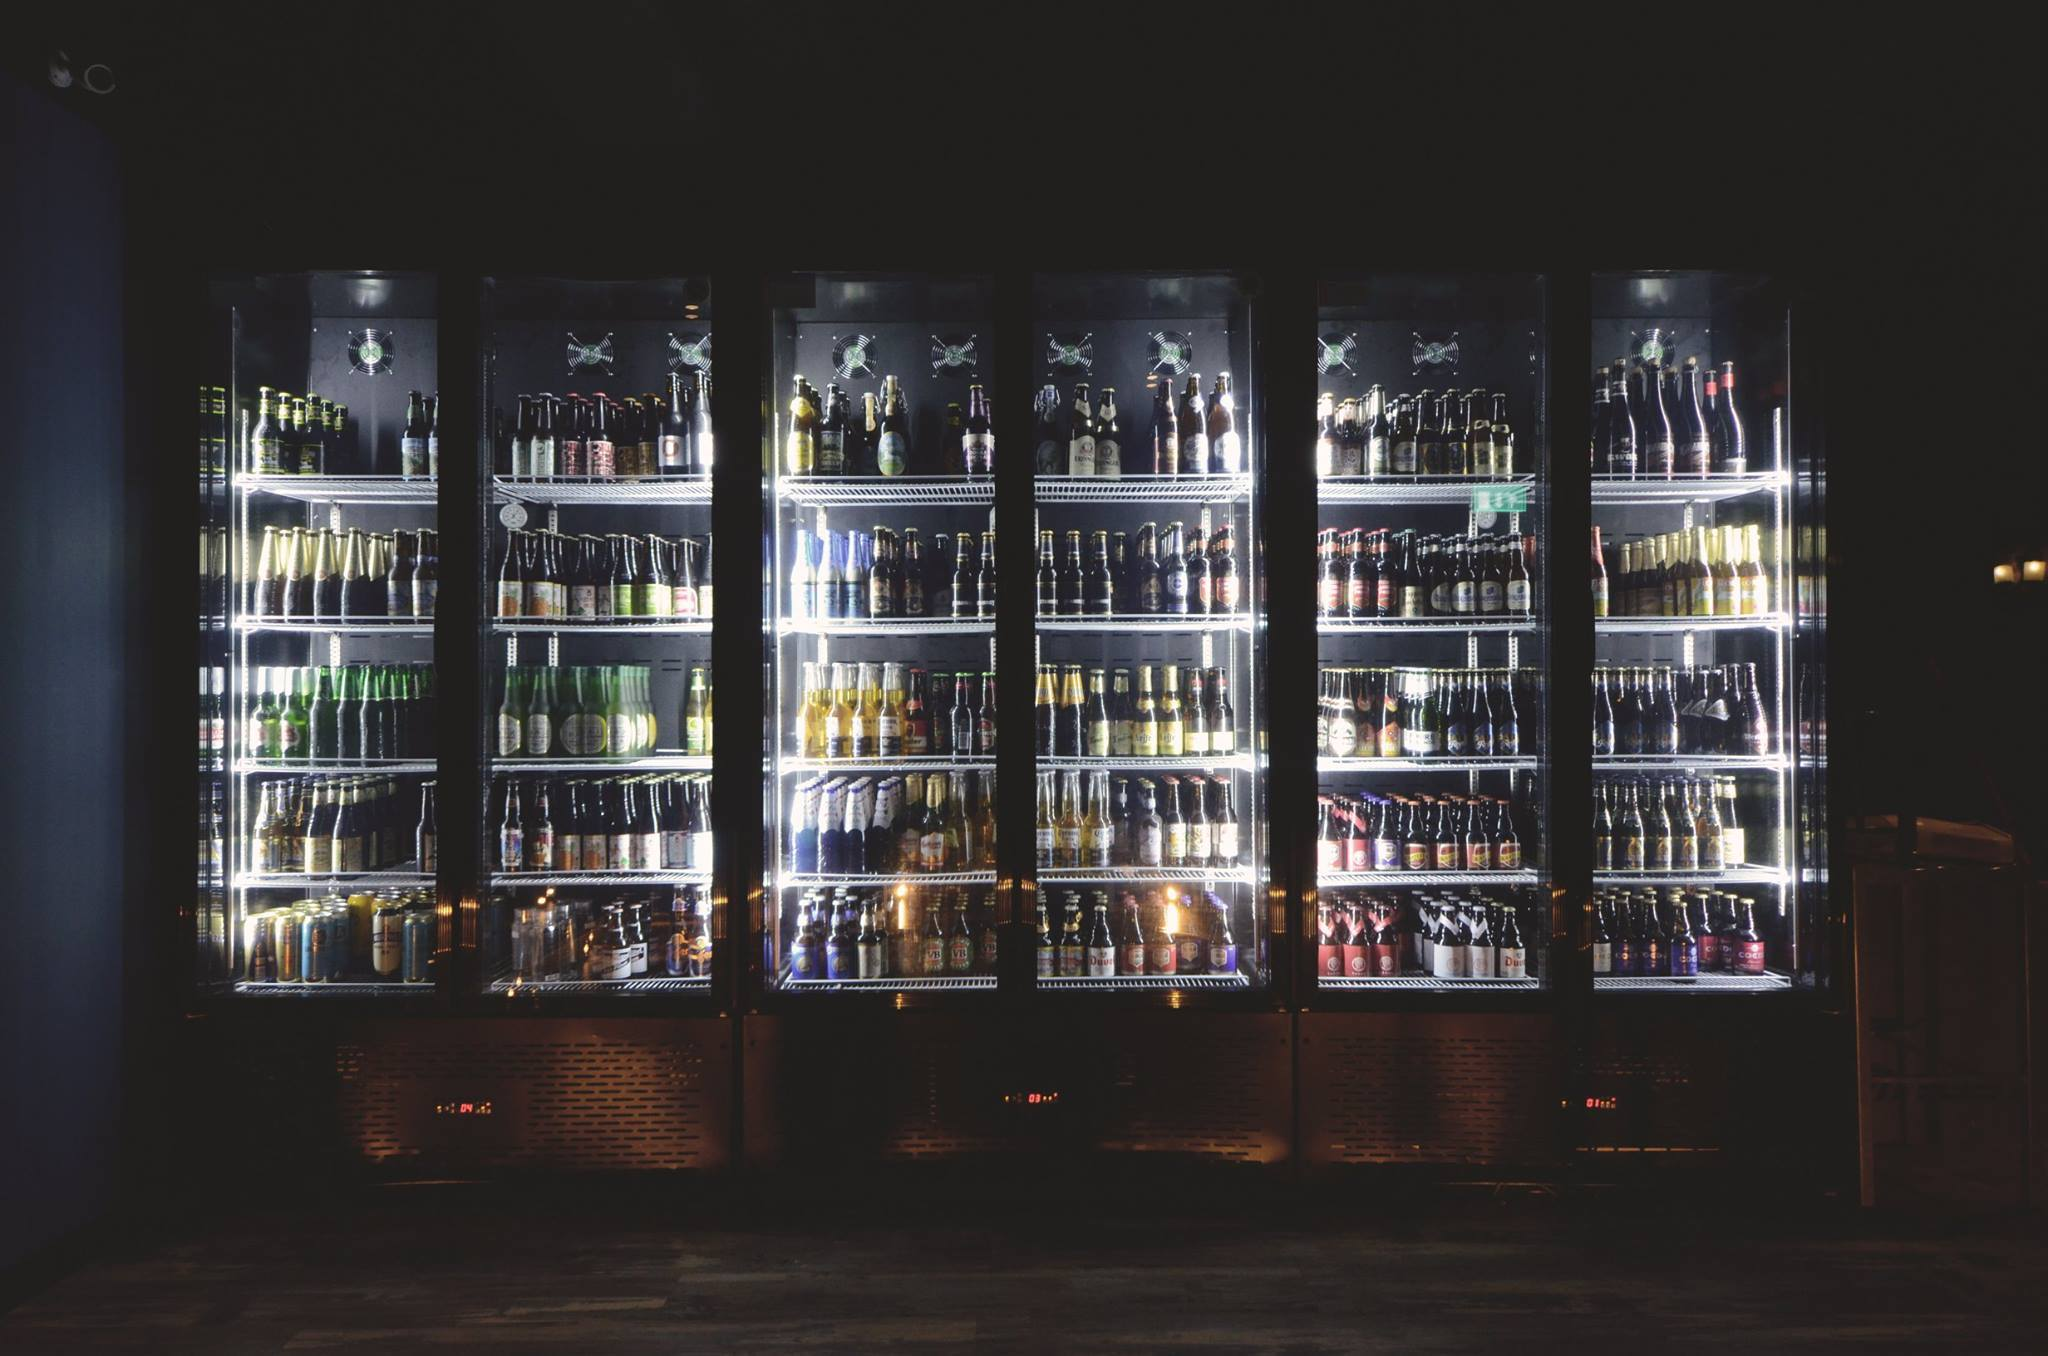 5 independent Macao bars – The Black Sheep